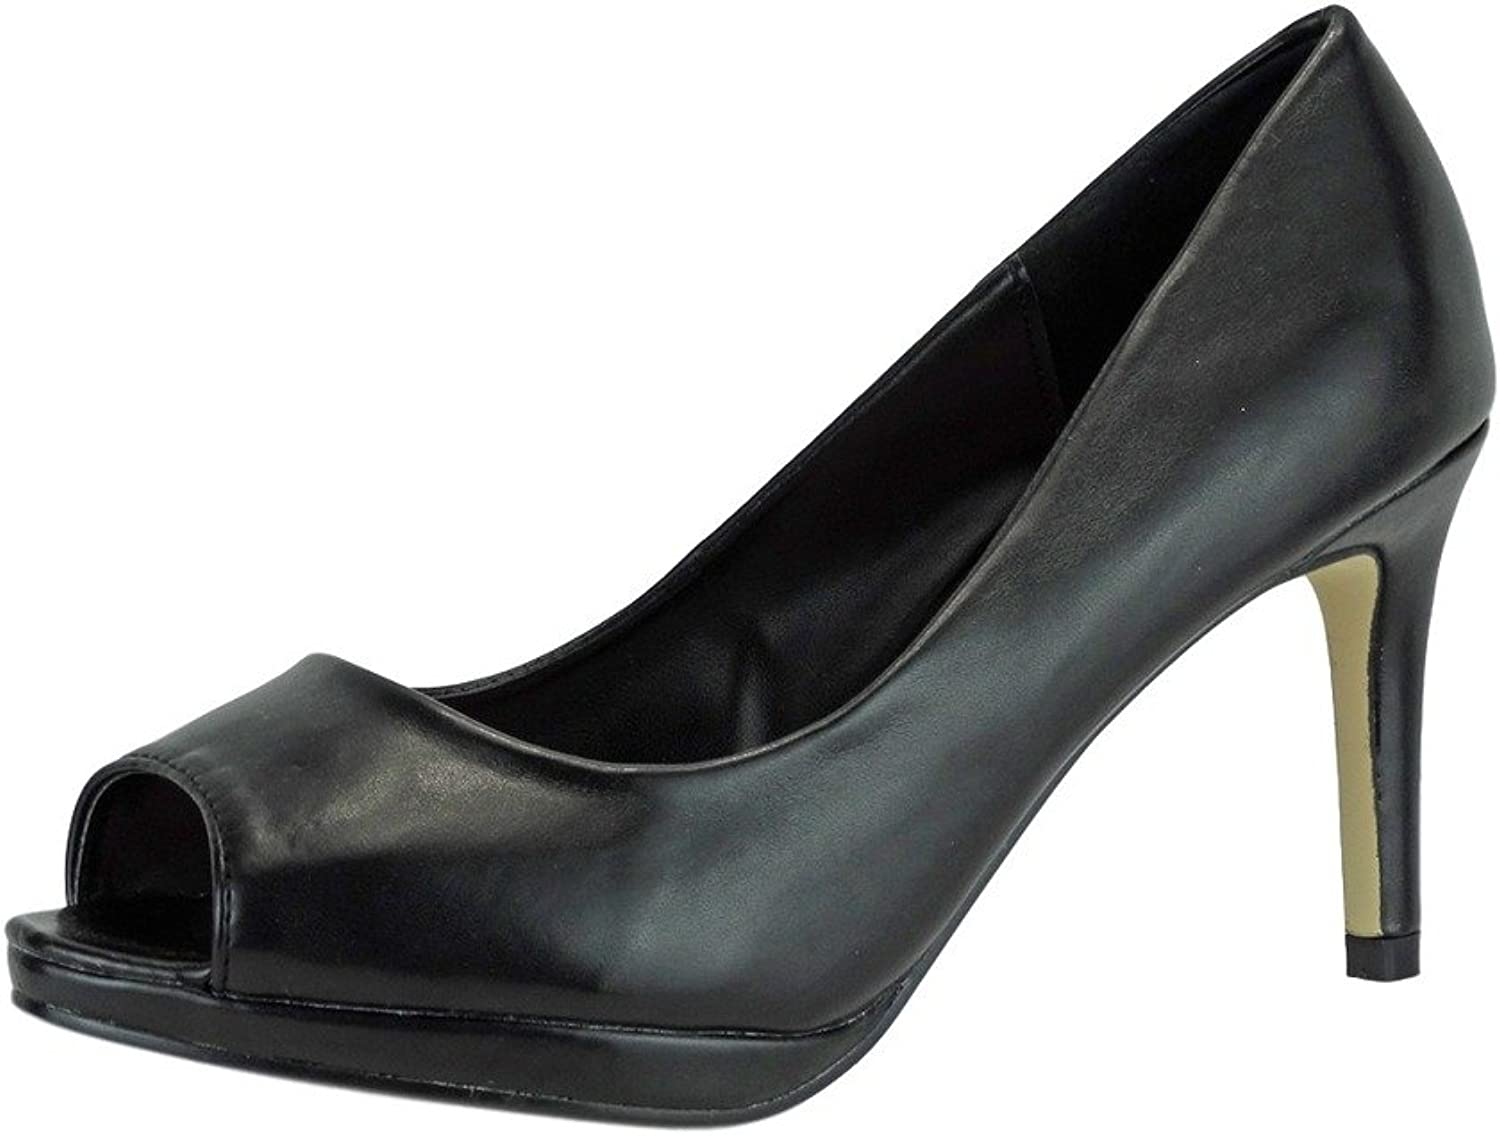 Pierre Dumas Women's Talia-1 Vegan Leather Peep-Toe High Heel Stiletto Dress Pumps